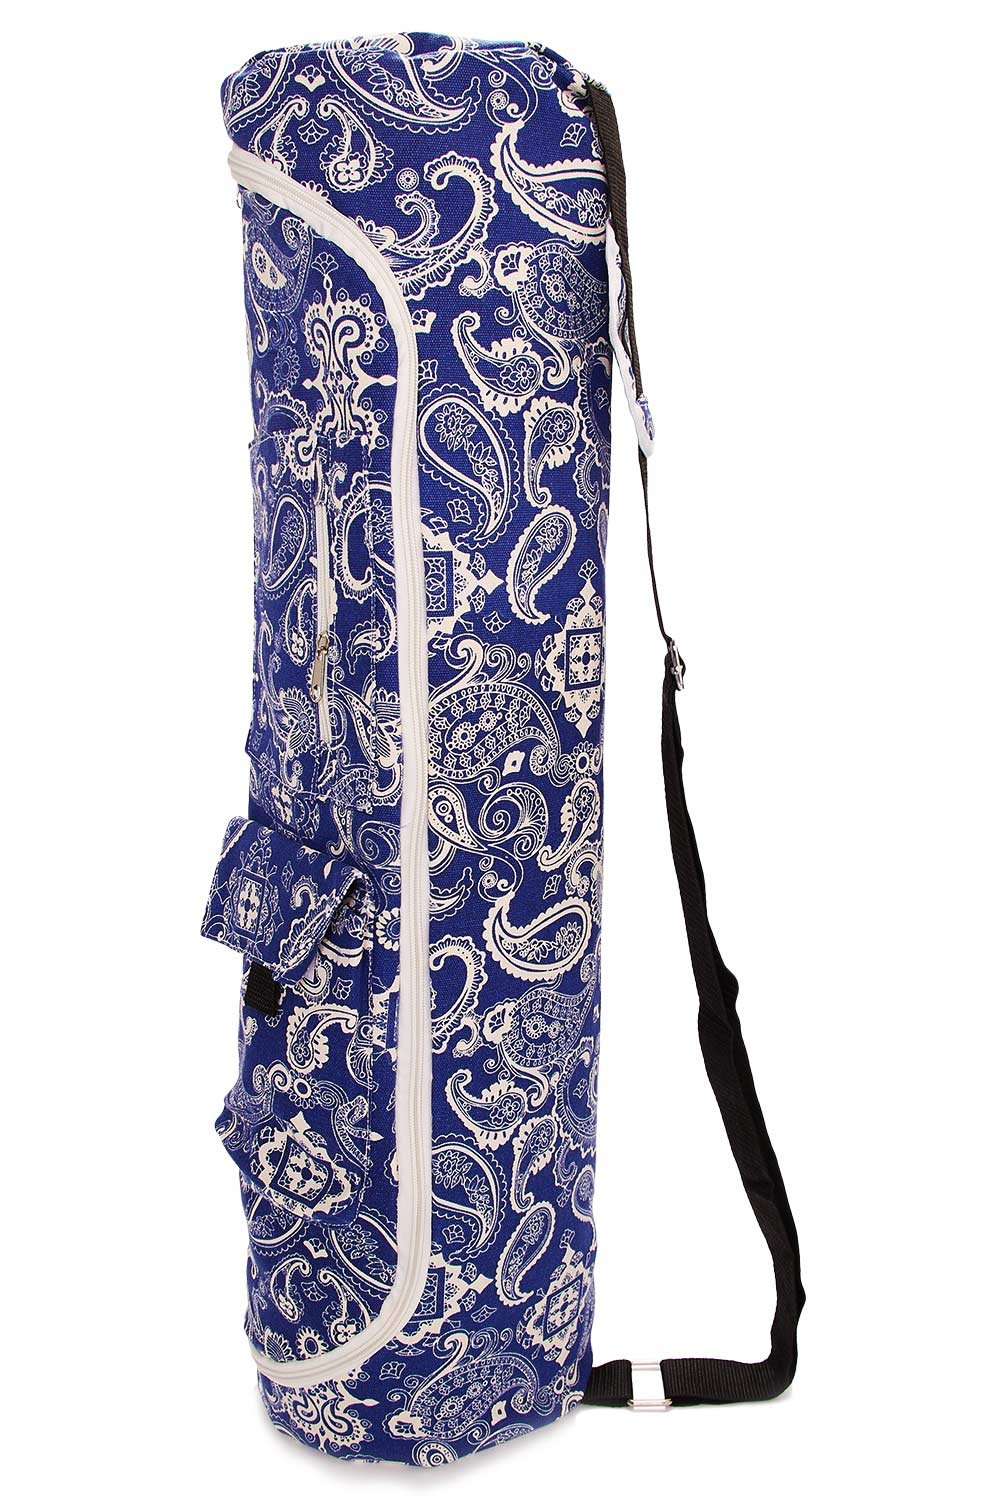 TUONROAD Floral Printed Blue White Bohimian Hippie Stipes Pattern Long Yoga Mat Cavans Yoga Carrying Bag Travel Yoga Bag Womens